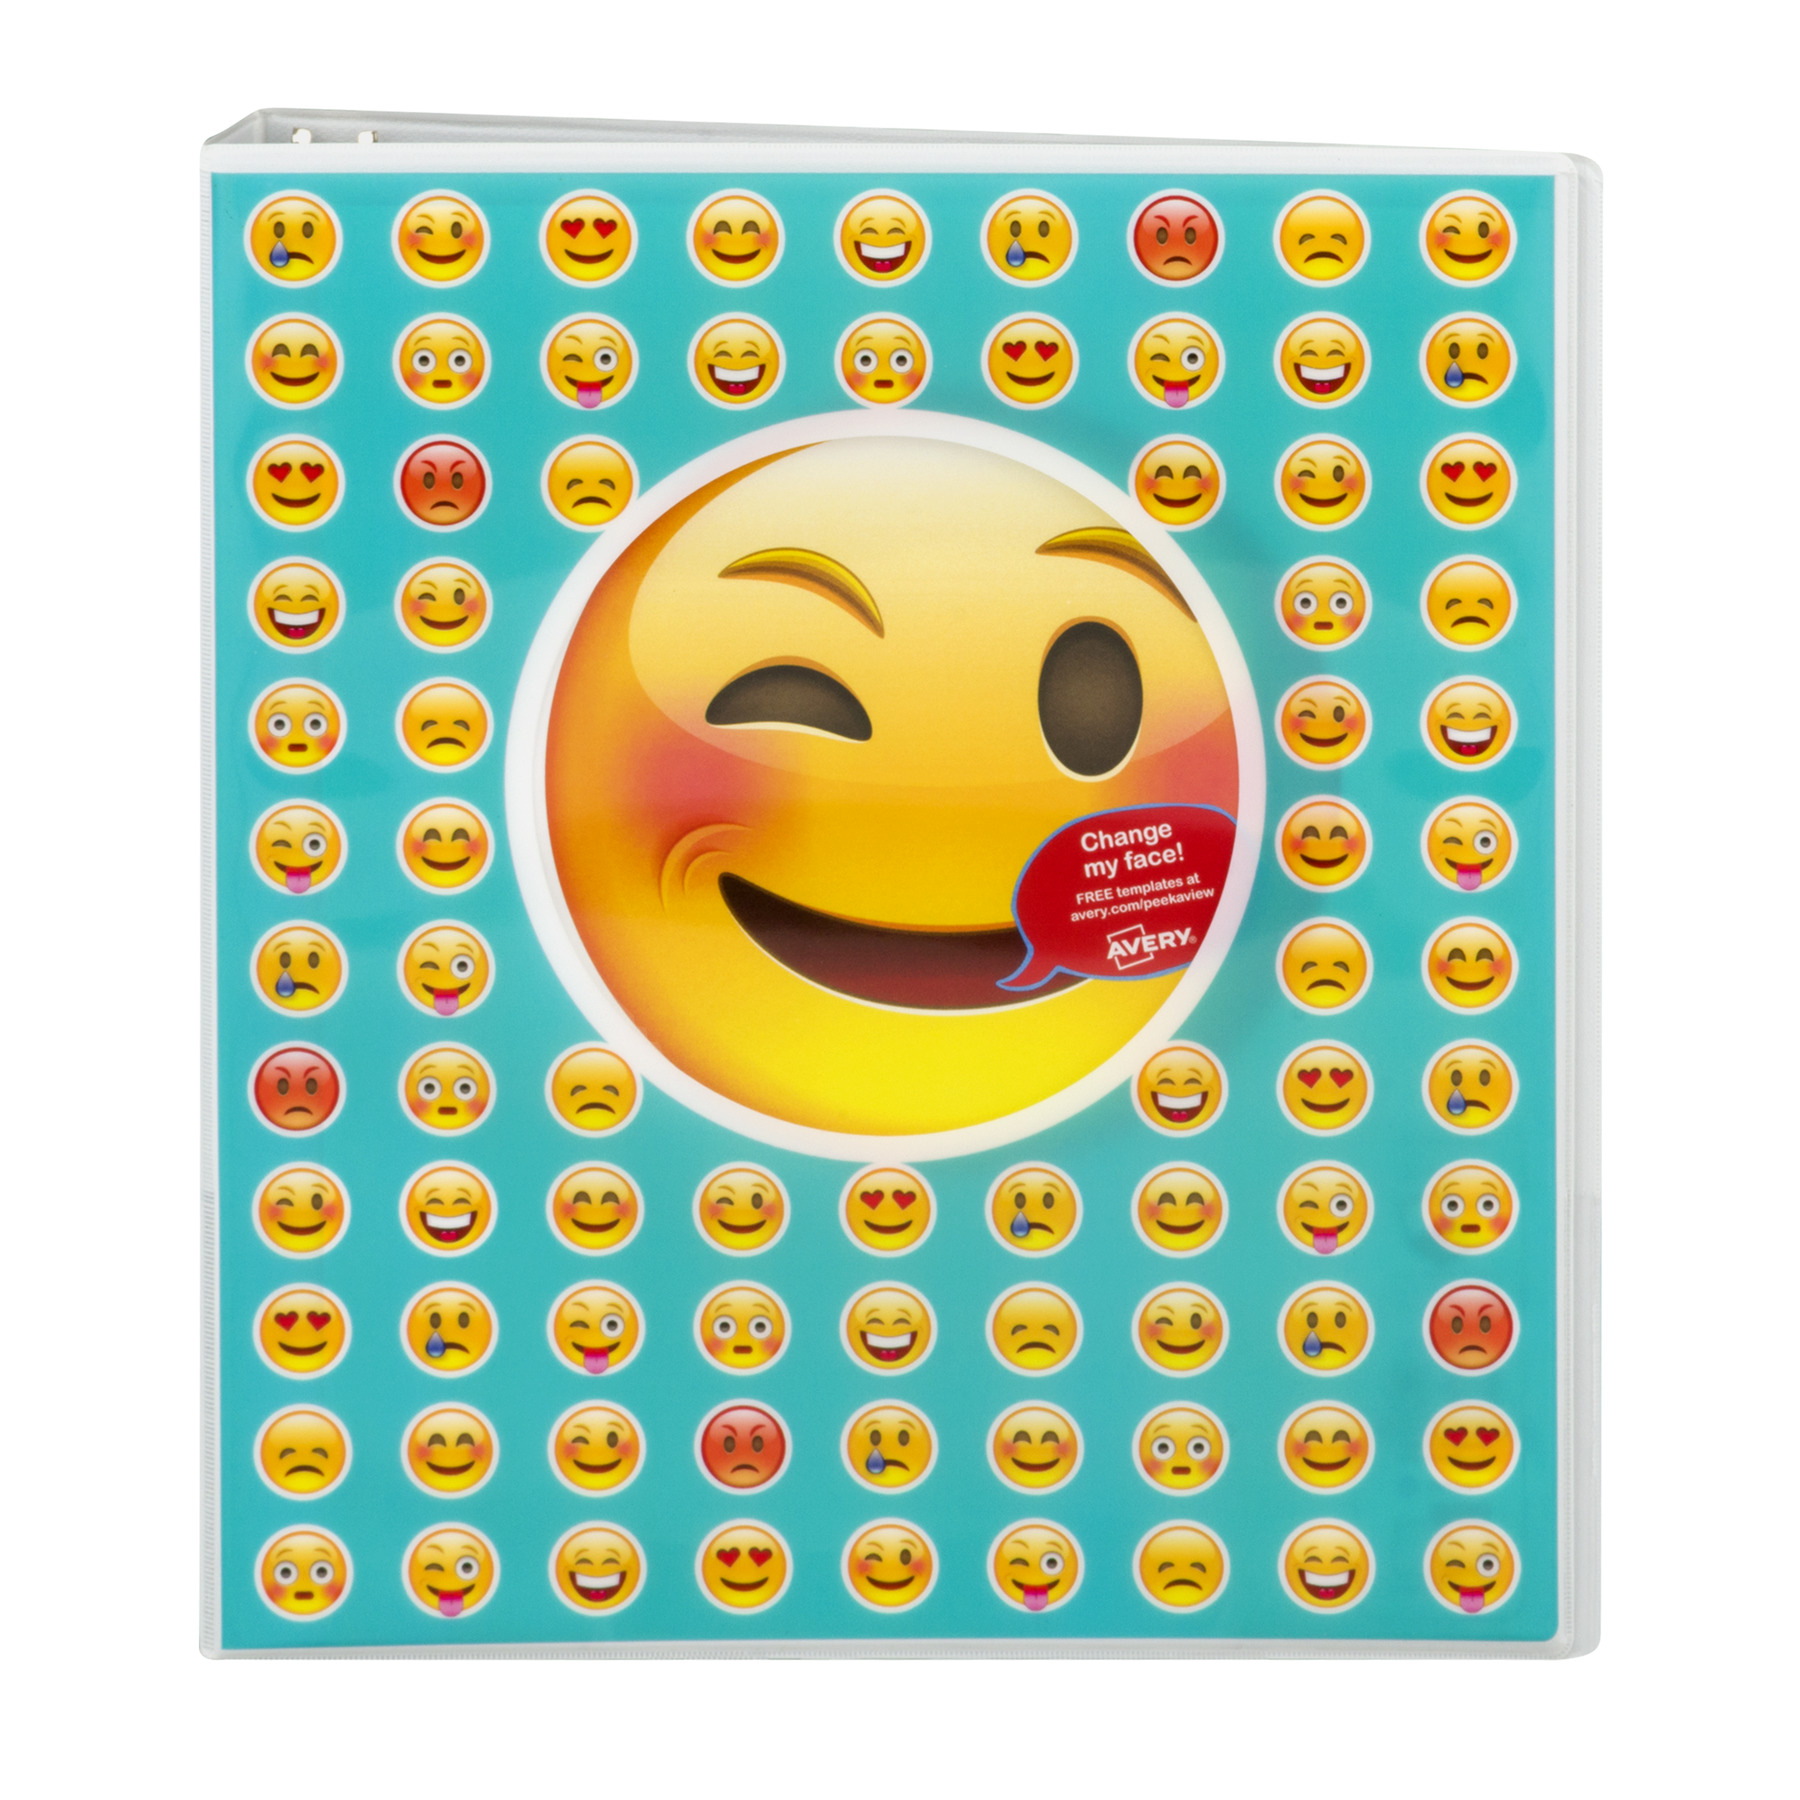 "Avery 1"" Peek-a-View Emoji Binder, People Design"